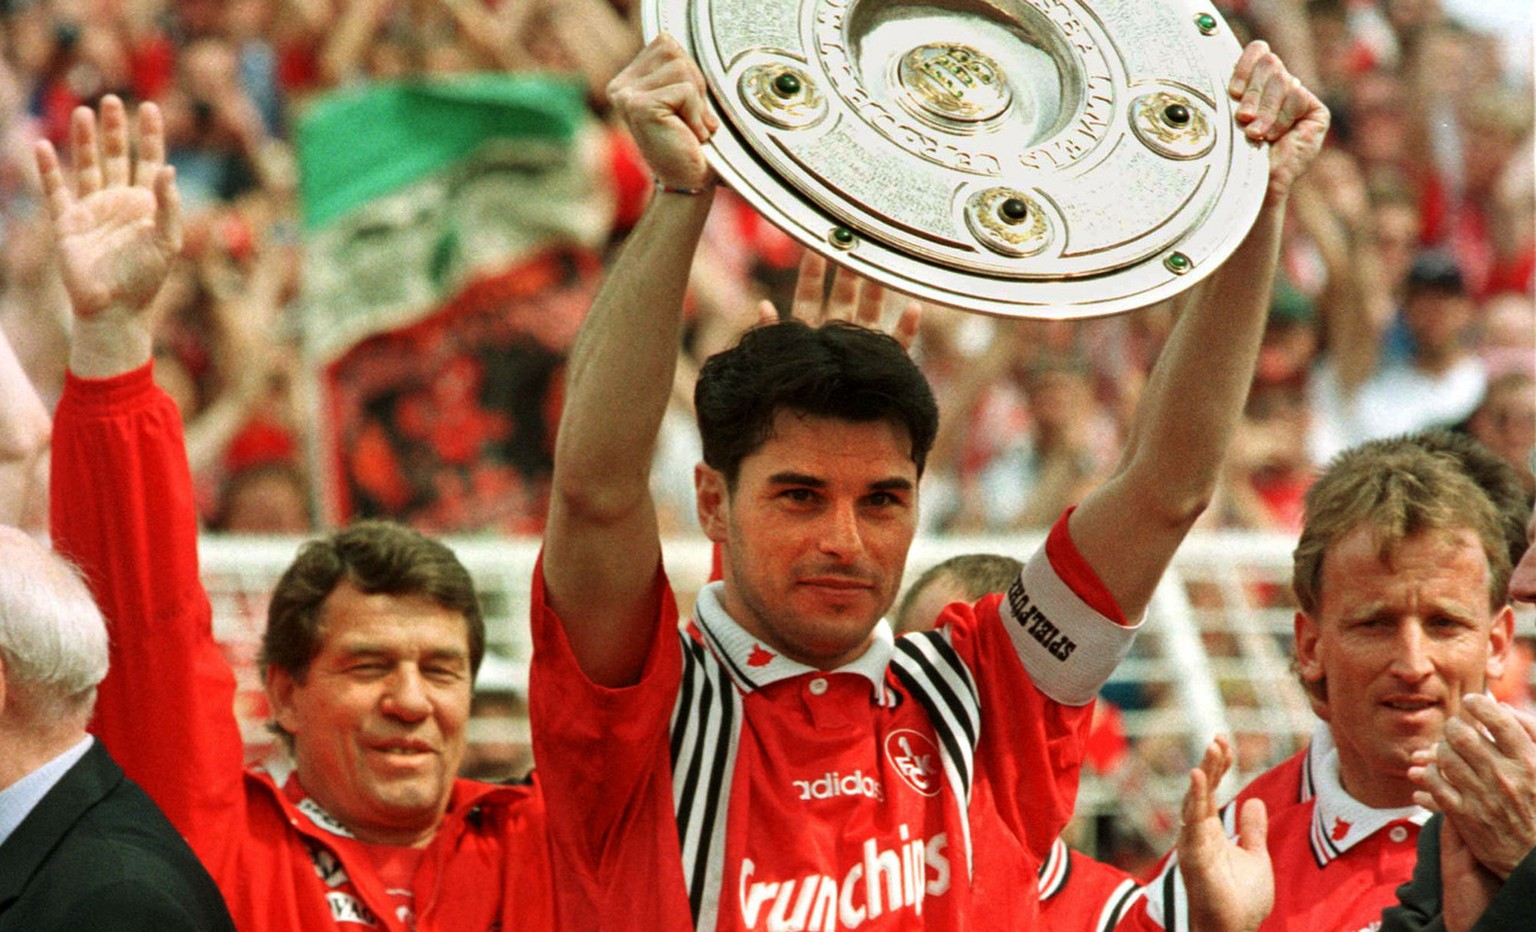 Team captain of German soccer champion Kaiserslautern, Ciriaco Sforza, displays the trophy in Hamburg's Volkspark Stadium on Saturday May 9, 1998, prior to the season's last match Hamburg vs Kaiserslautern. Kaiserslautern decided the chamiponship already last week but the trophy was traditionally handed over on the last match. Left coach Otto Rehhagel, right Andreas Brehme. (AP Photo/Michael Probst)